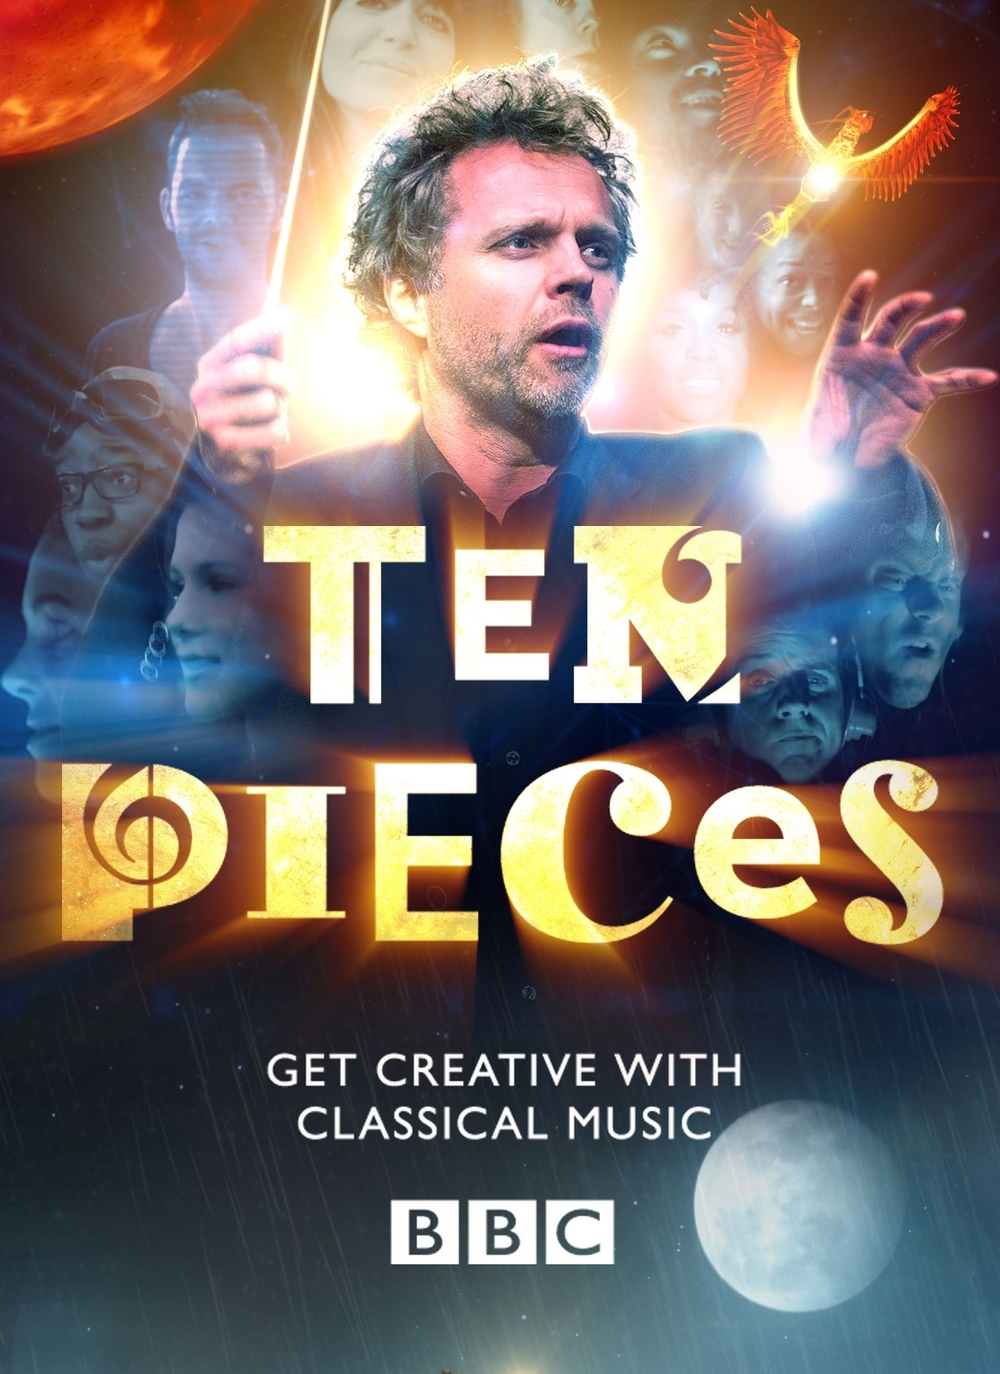 ten-pieces-promo.jpg